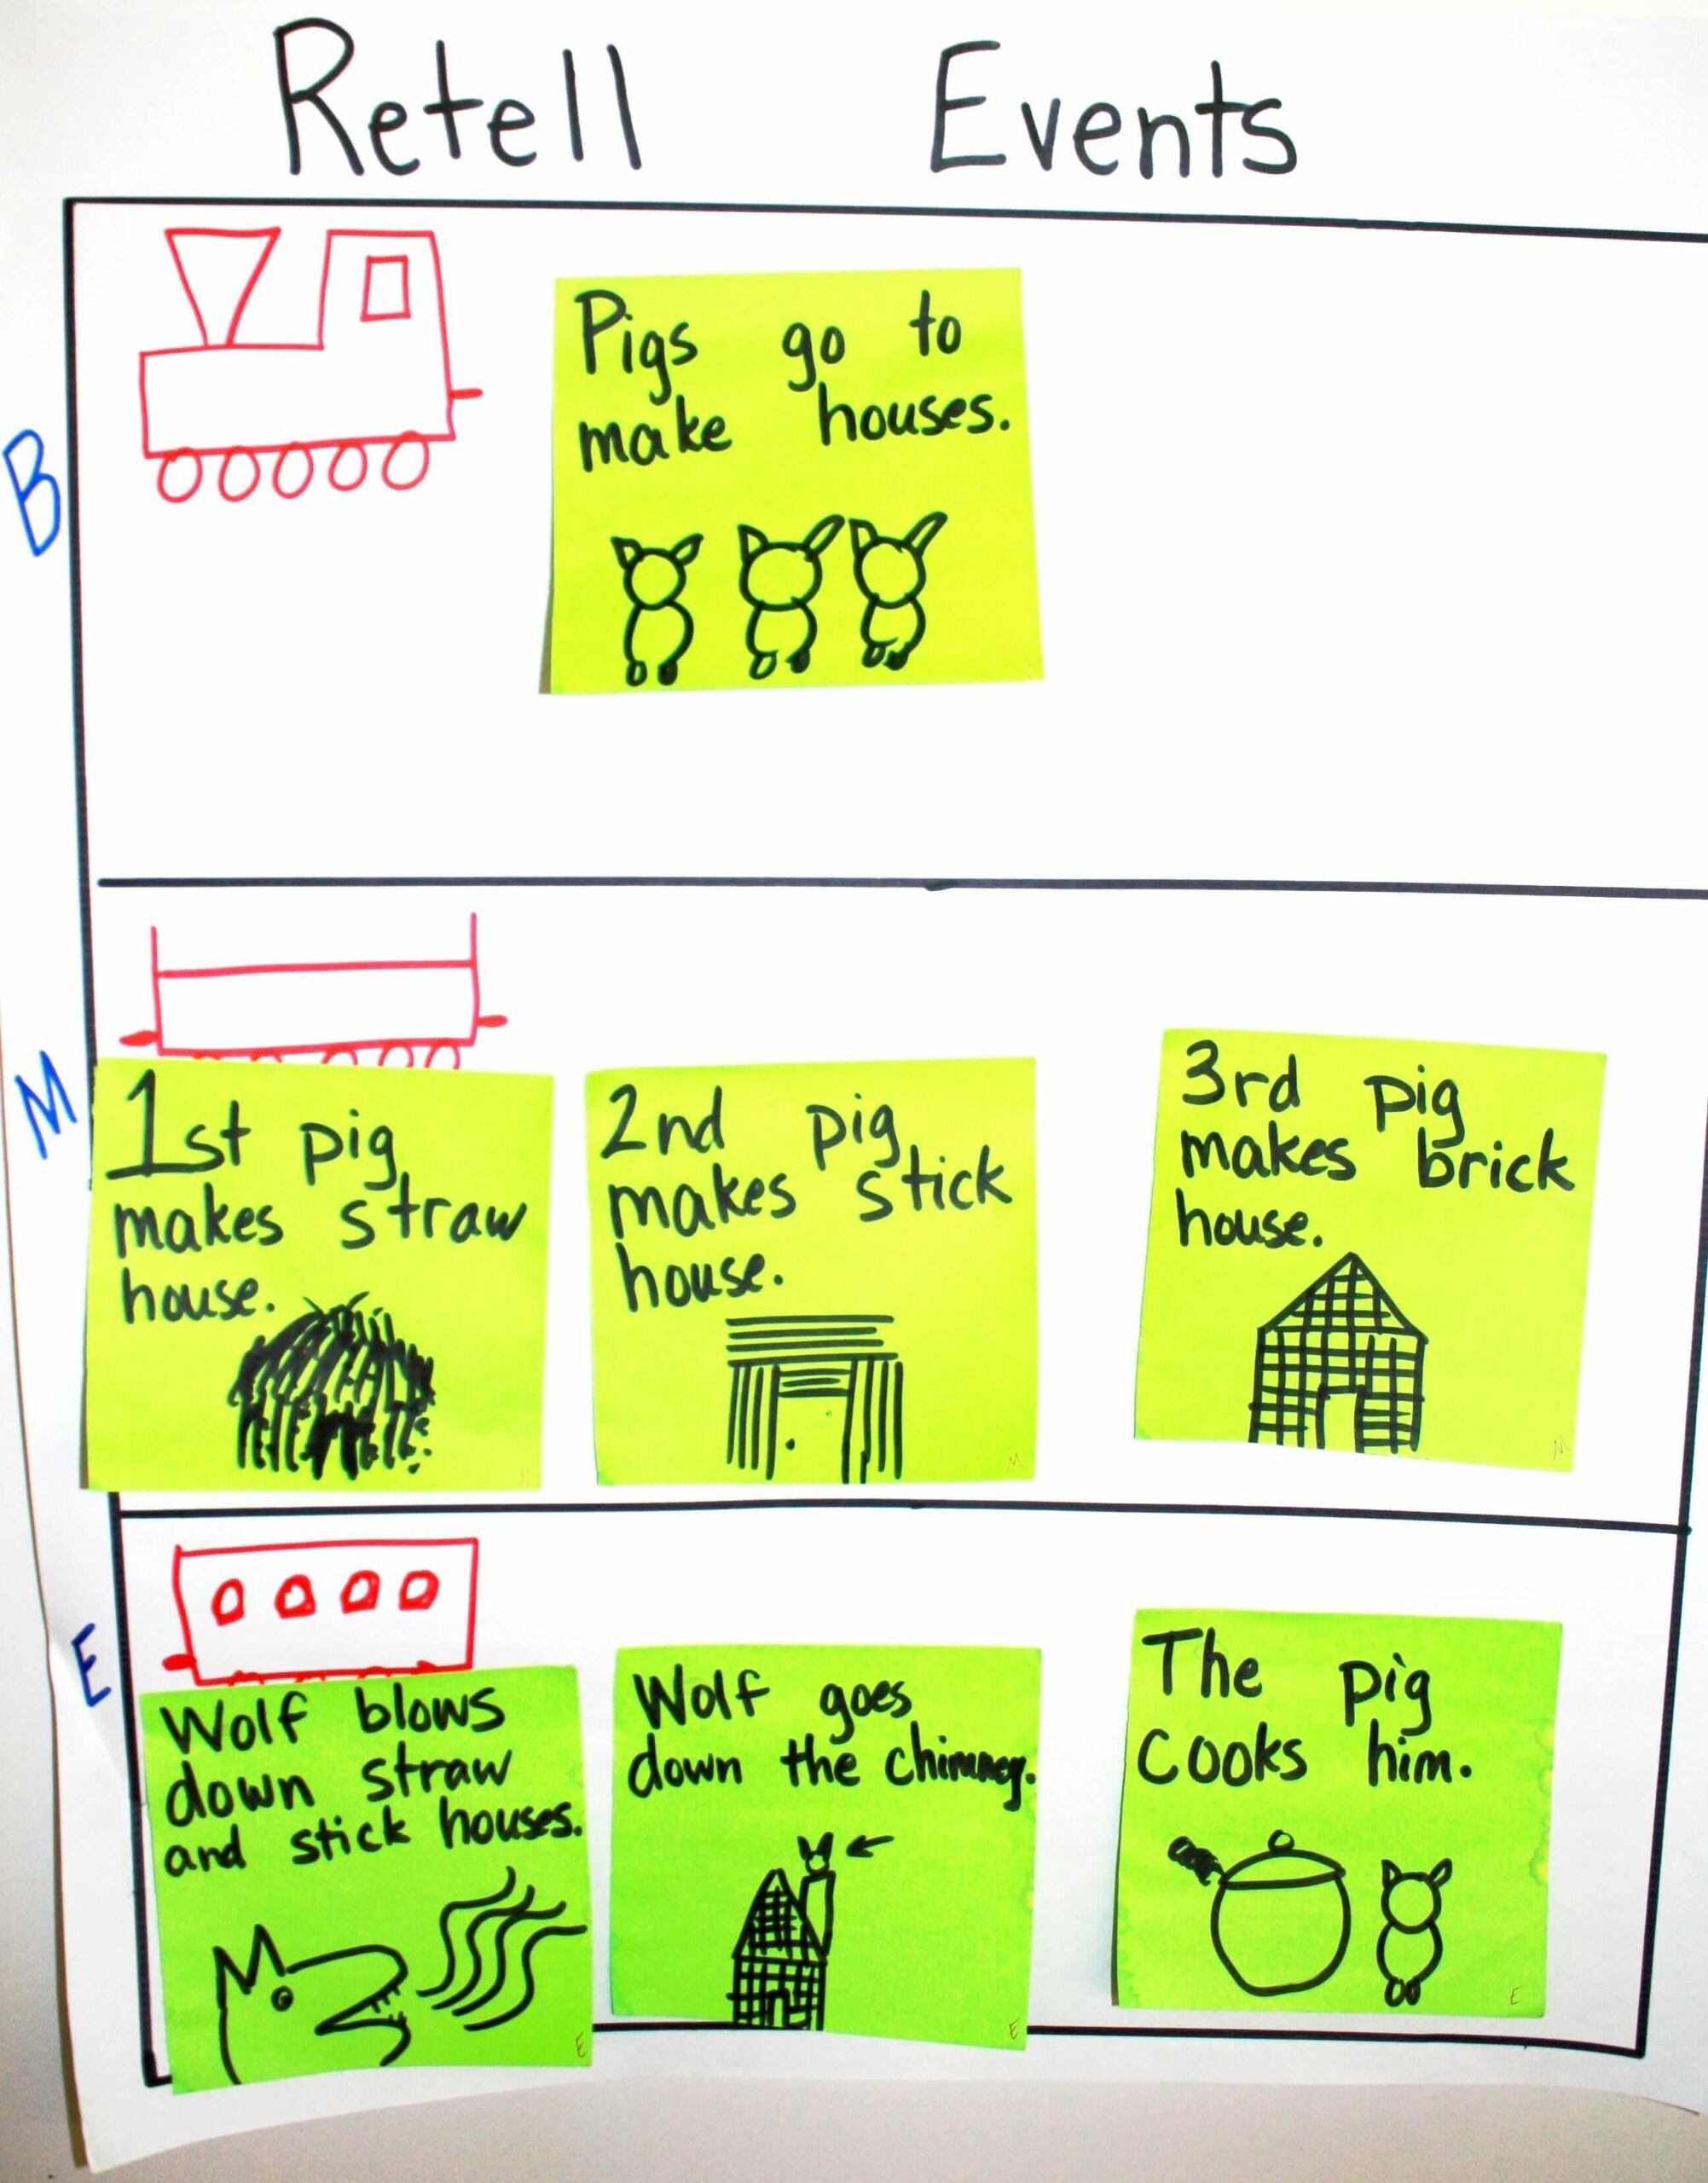 Retell events on chart paper